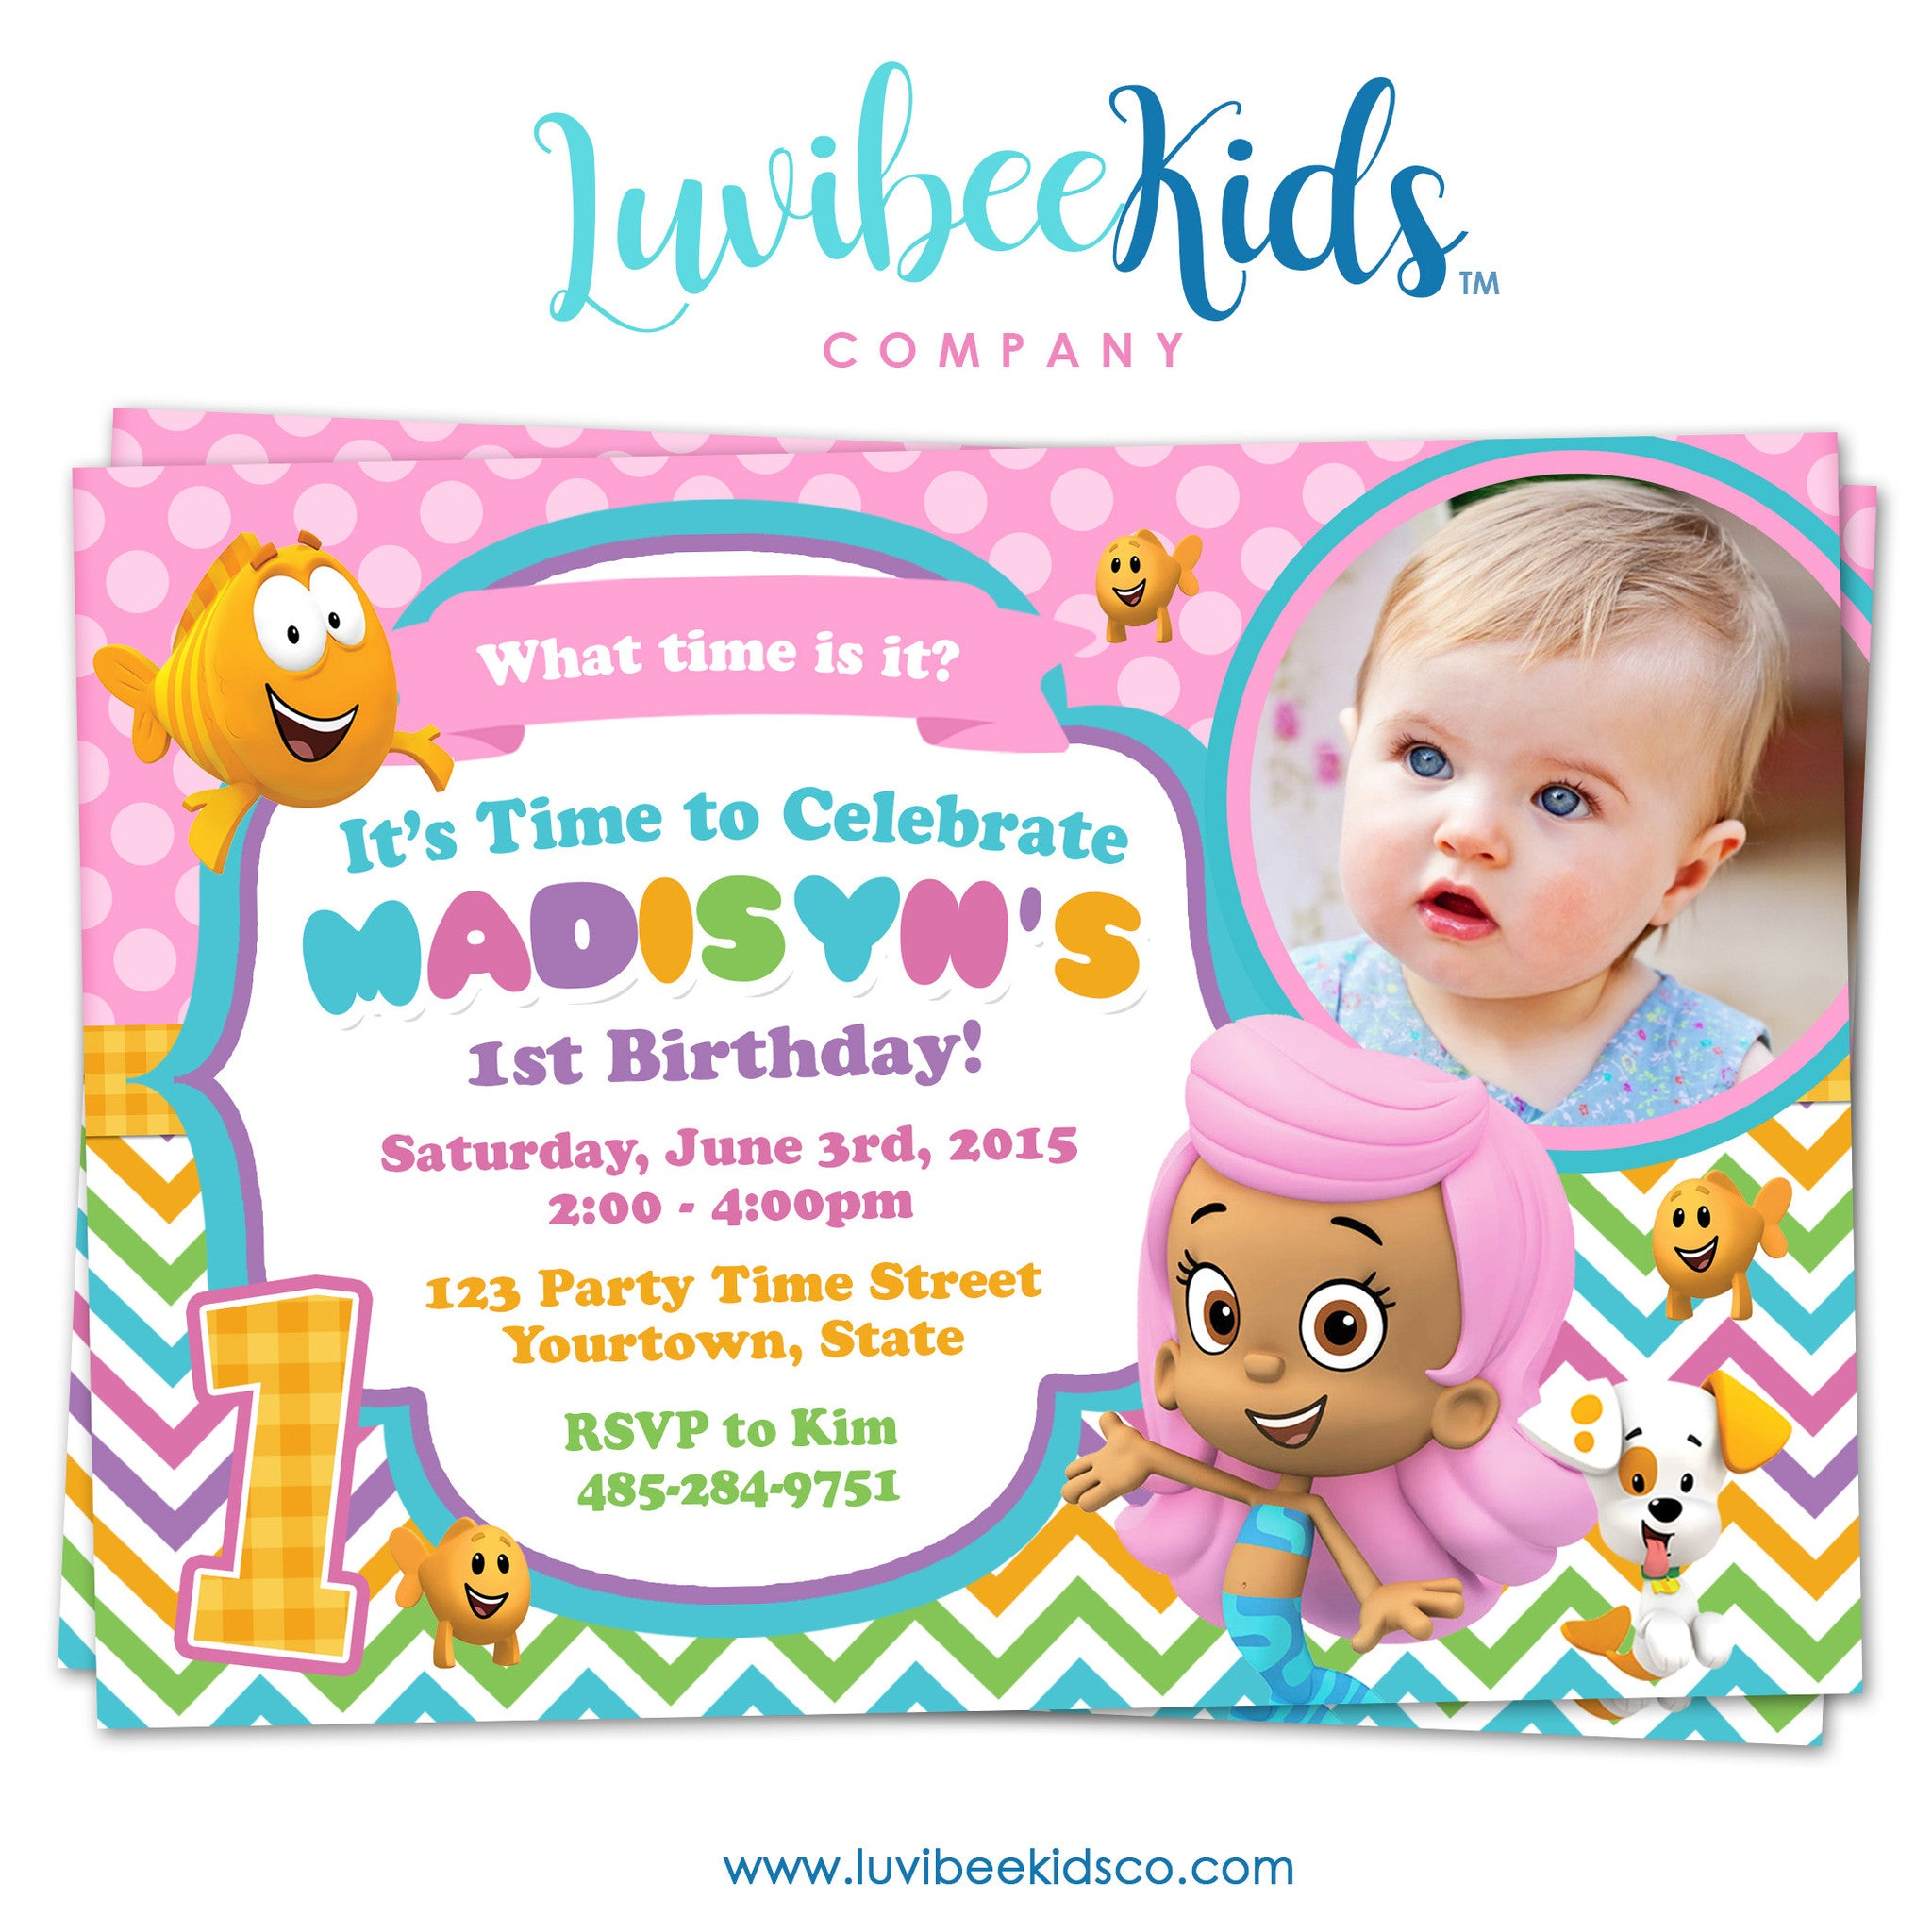 Bubble Guppies - Birthday Invitation - Rainbow Girl's Style with Photo | 001 - LuvibeeKidsCo